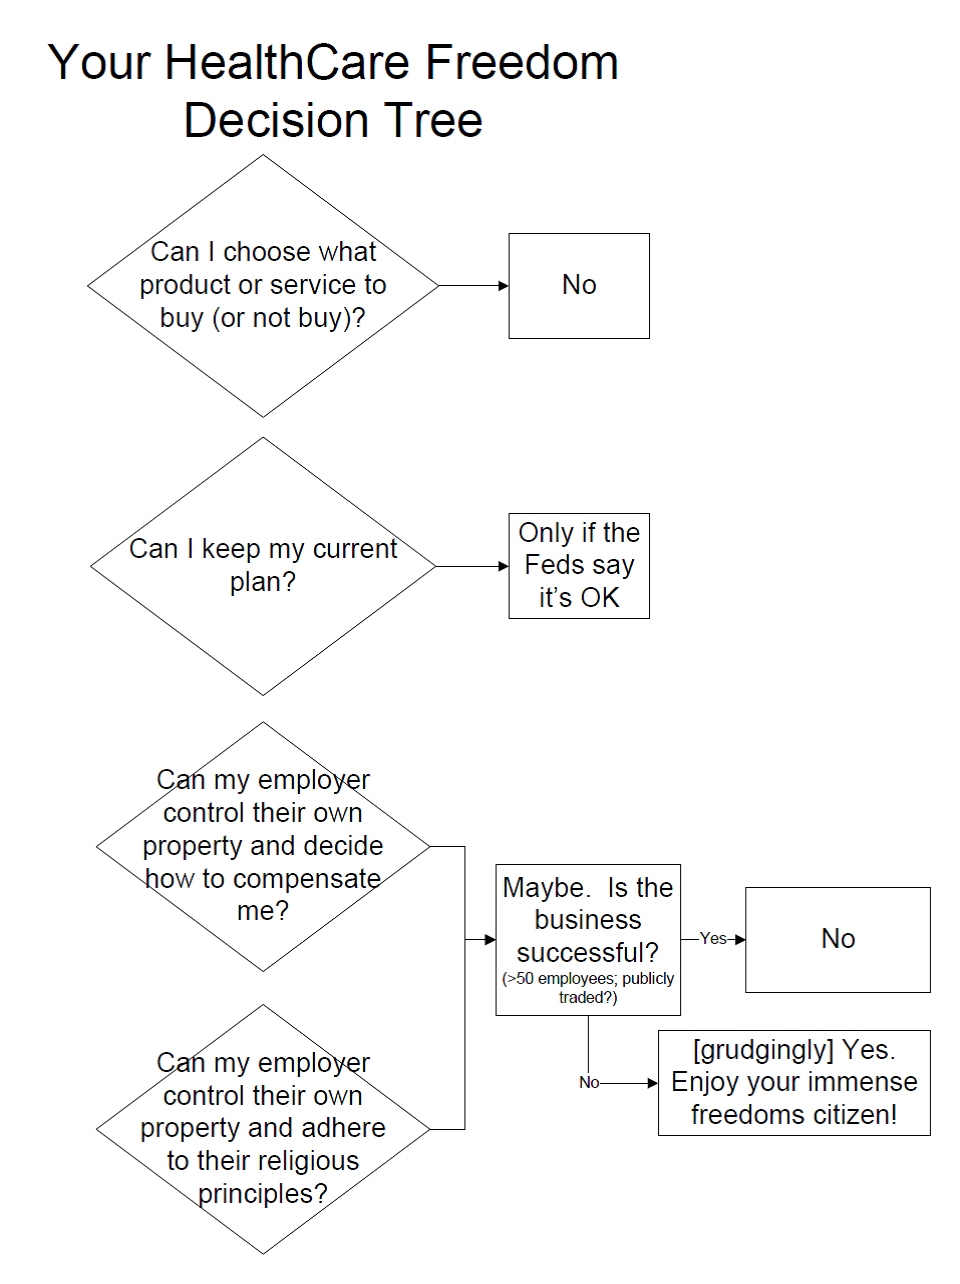 Health Care Freedom Decision Tree